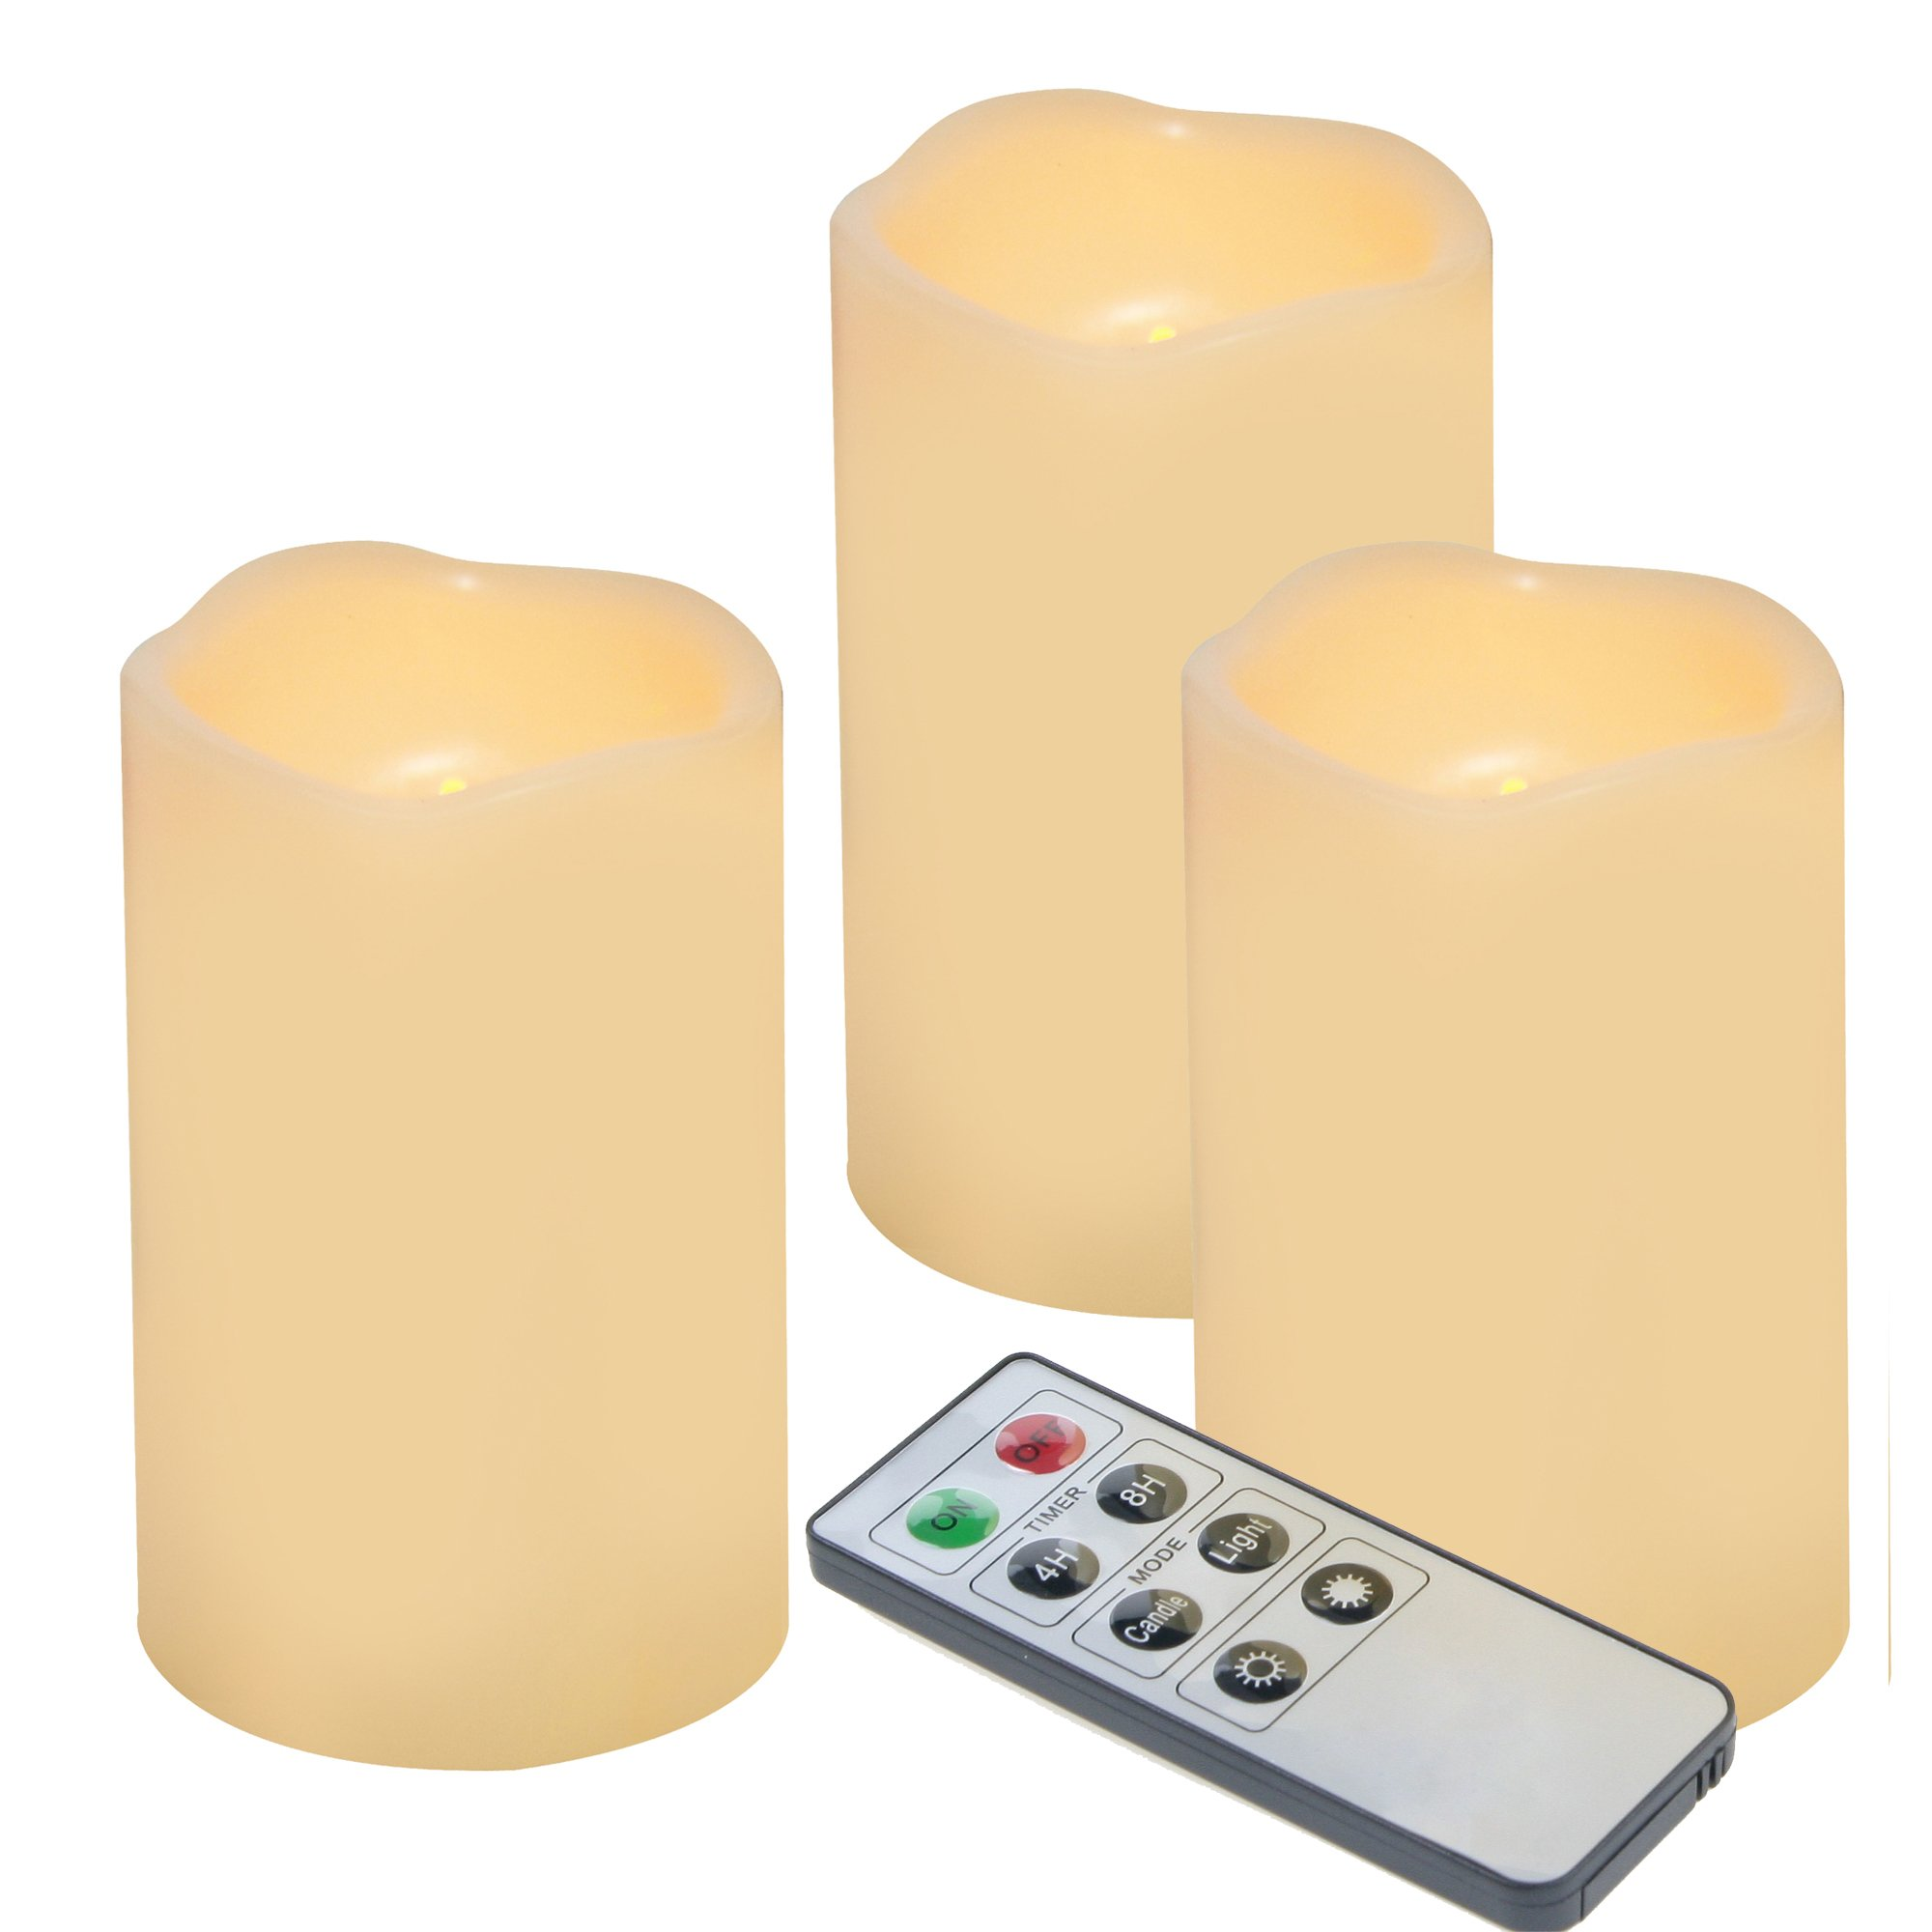 "Outdoor Flameless LED Candles with Remote & Timer - Long Lasting Waterproof Realistic Flickering Battery-Operated Battery Powered Electric Electronic Pillar Candles by Izan 3""(D) x5""(H) 3-Pack by iZAN"